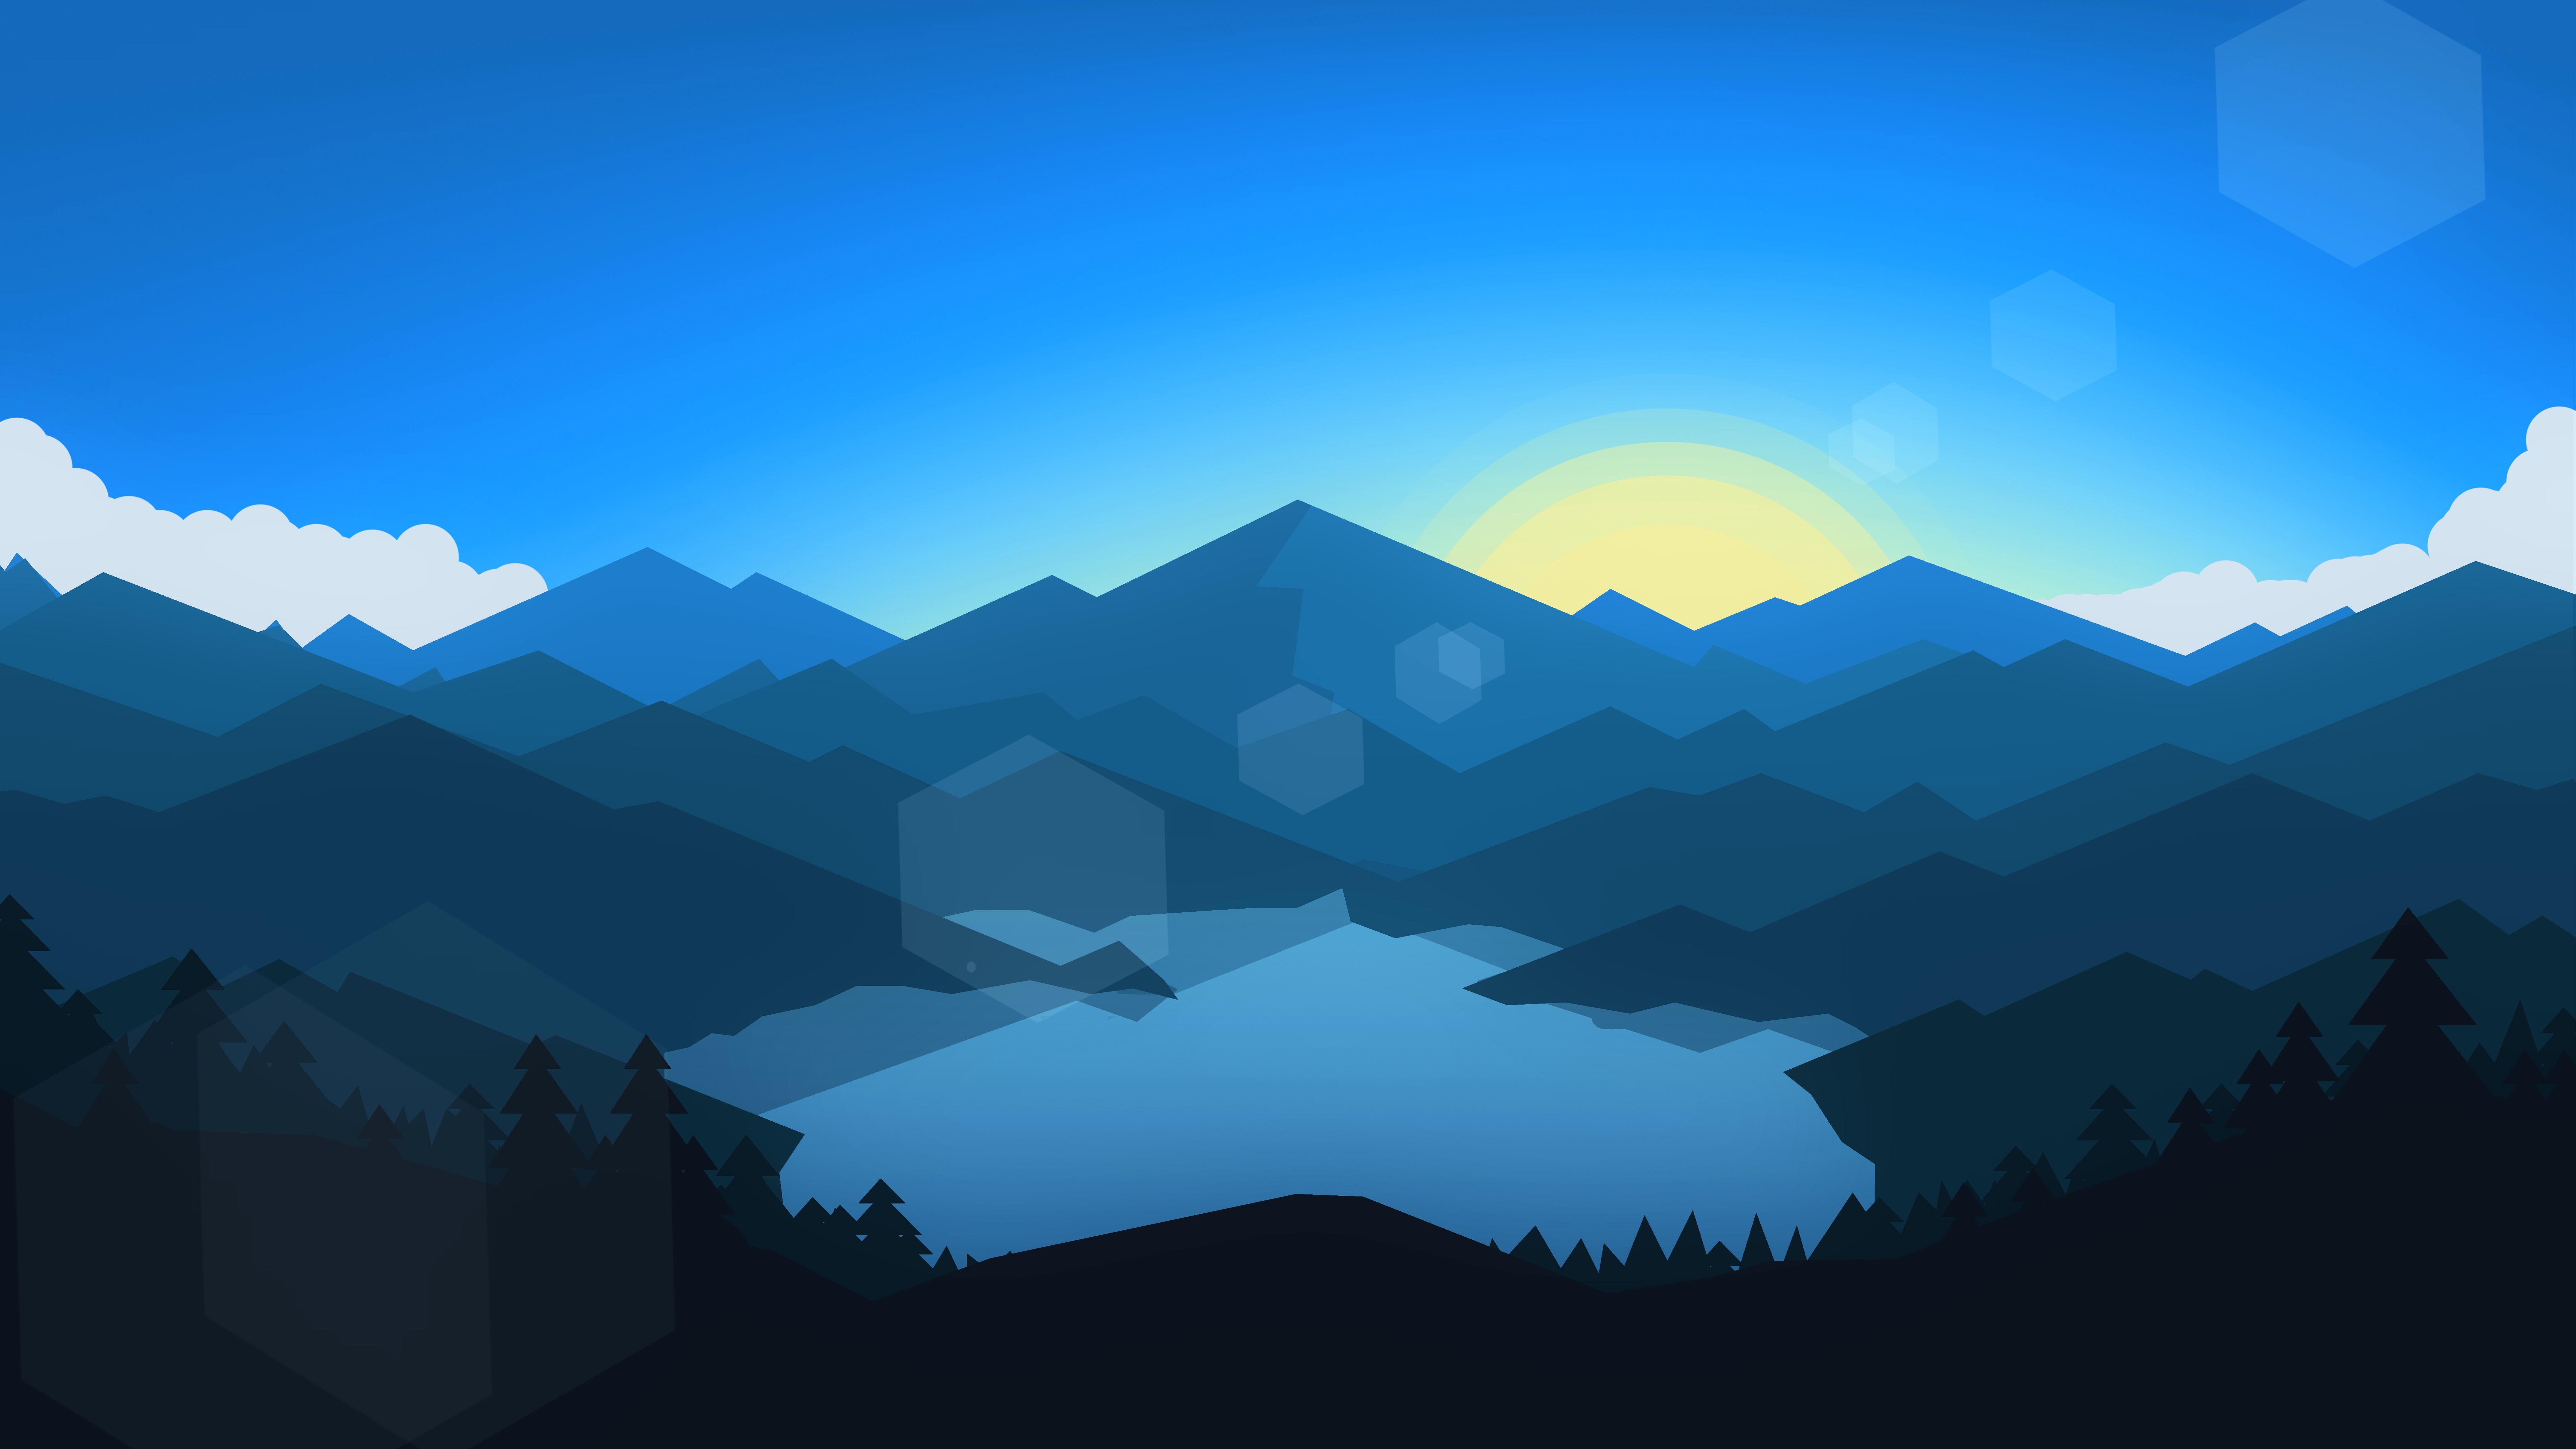 3d Forest Wallpaper Backgrounds Forest Mountains Sunset Cool Weather Minimalism Hd Artist